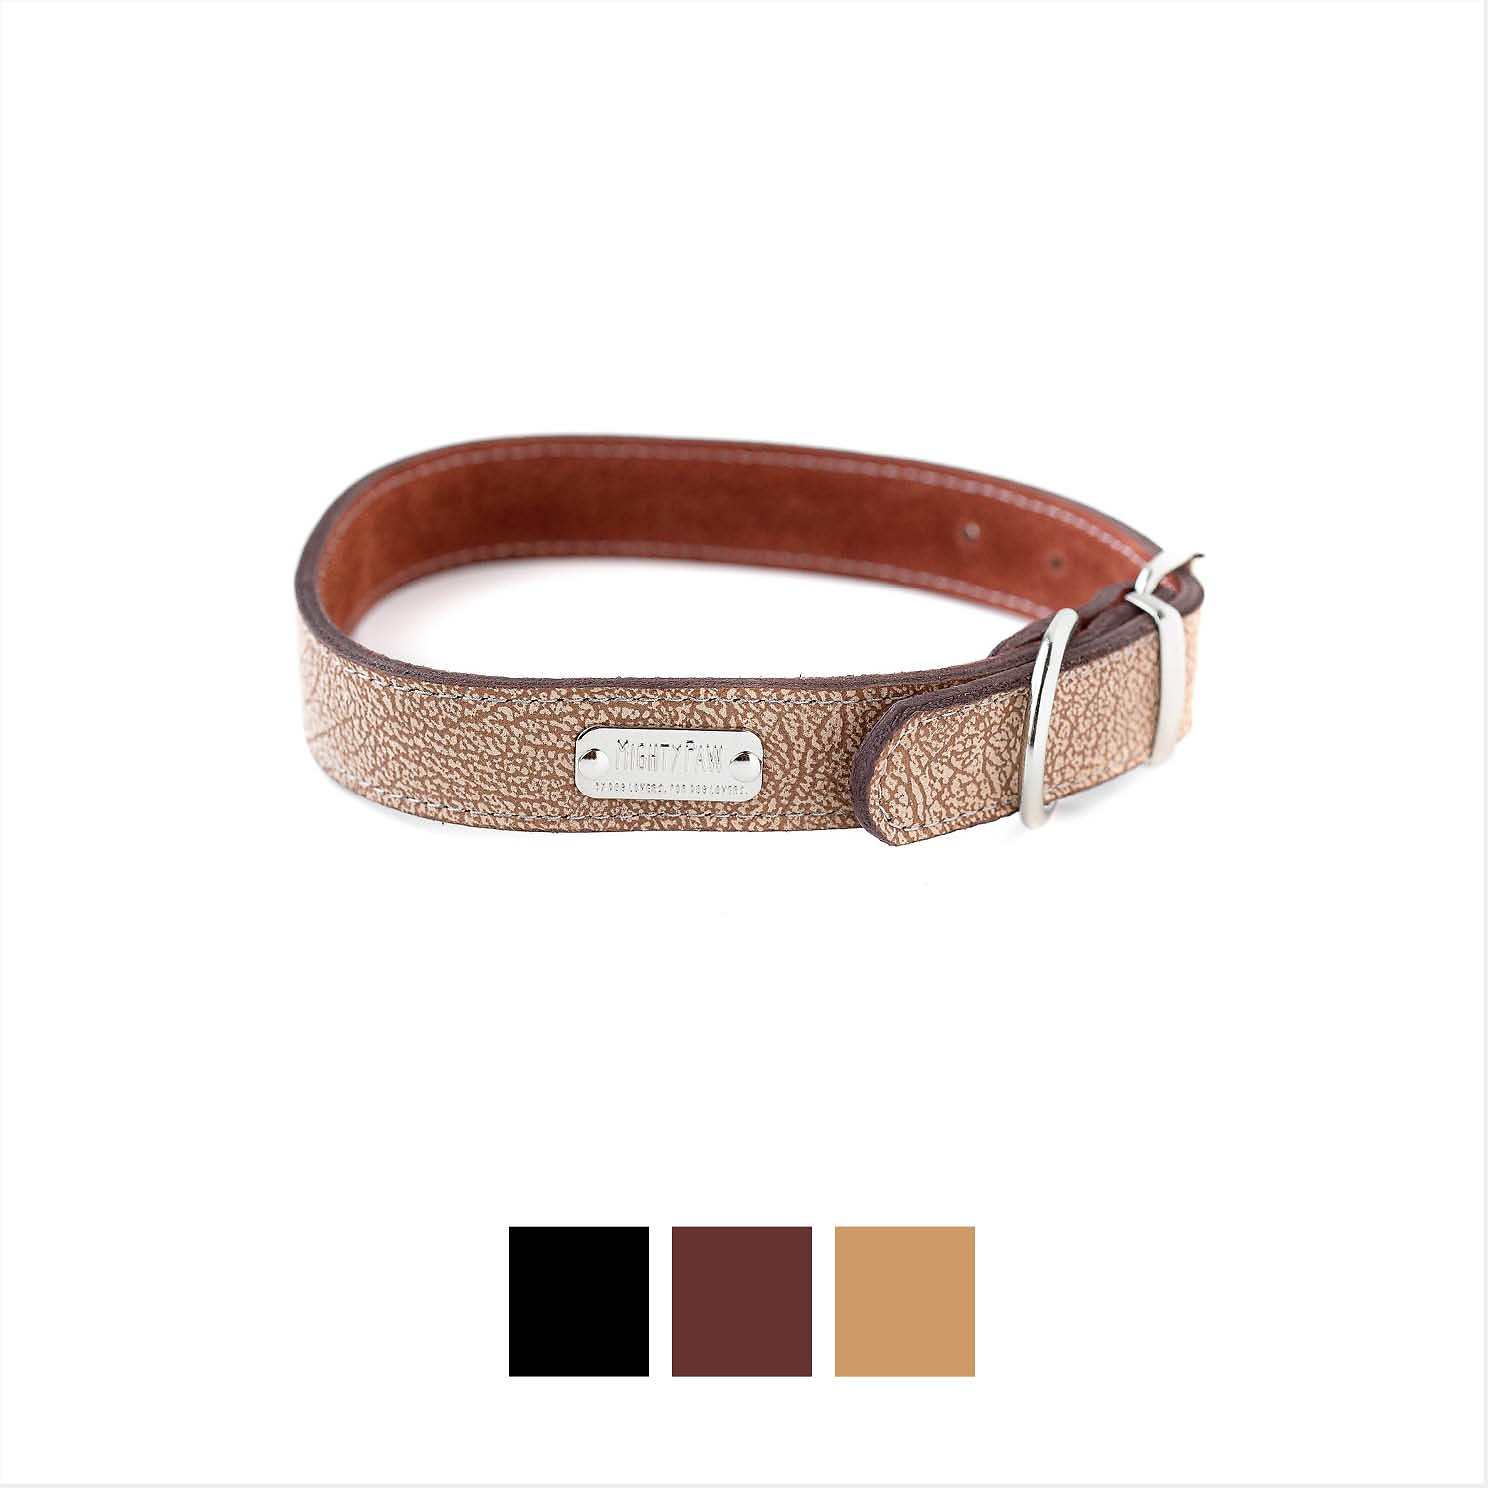 Mighty Paw Leather Dog Leash, Light Brown, Standard recommendations